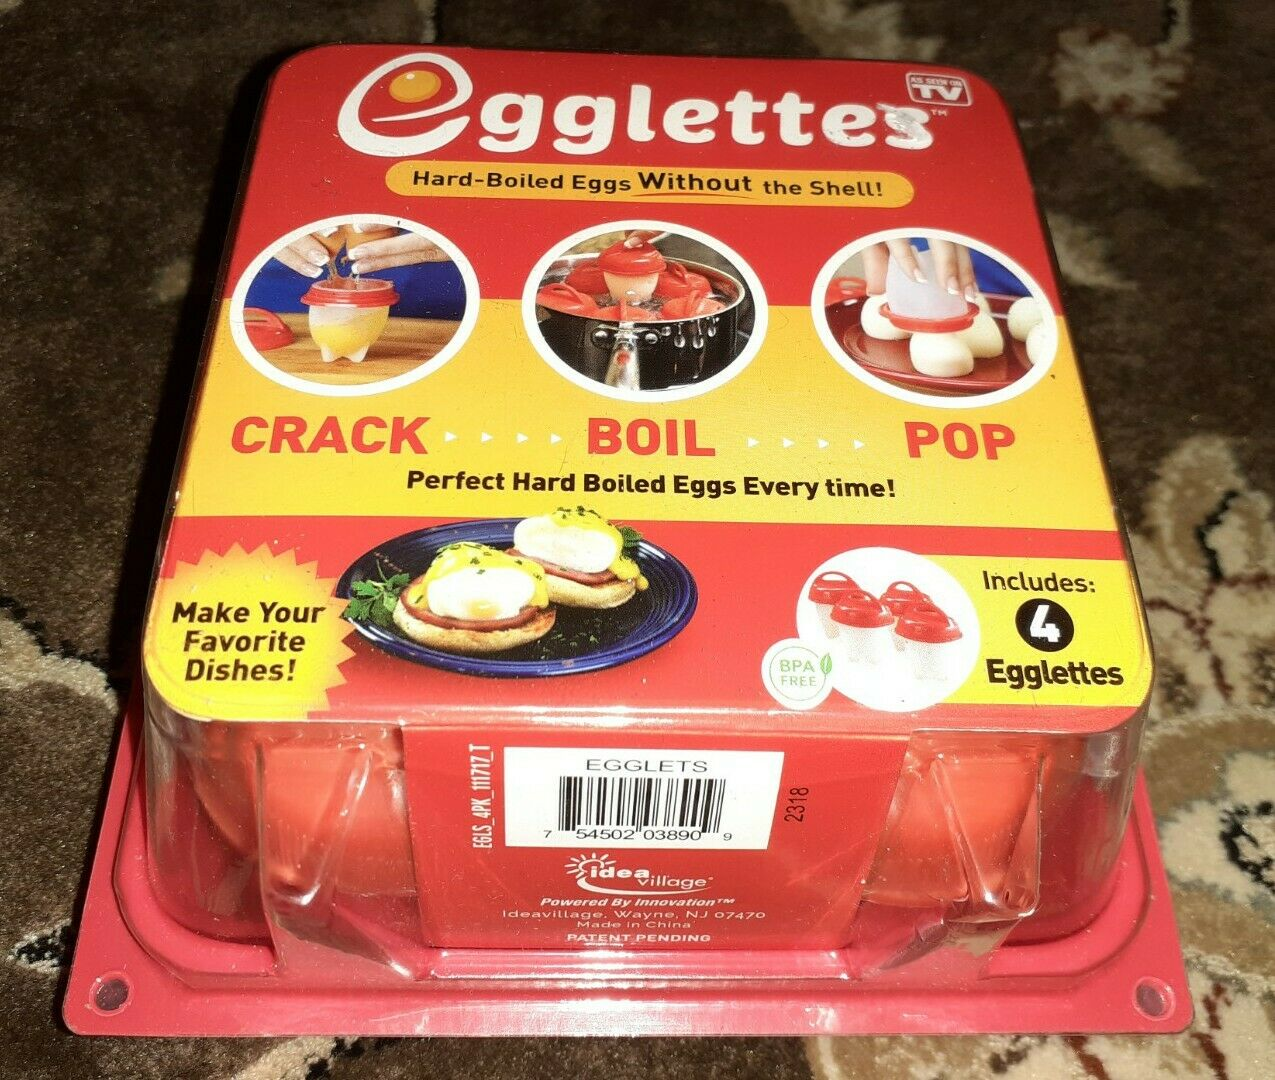 Silicone Egg Cup/'s M17E NEW Egglettes Hard Boiled Egg Cooker w//o the Shell 4 ct